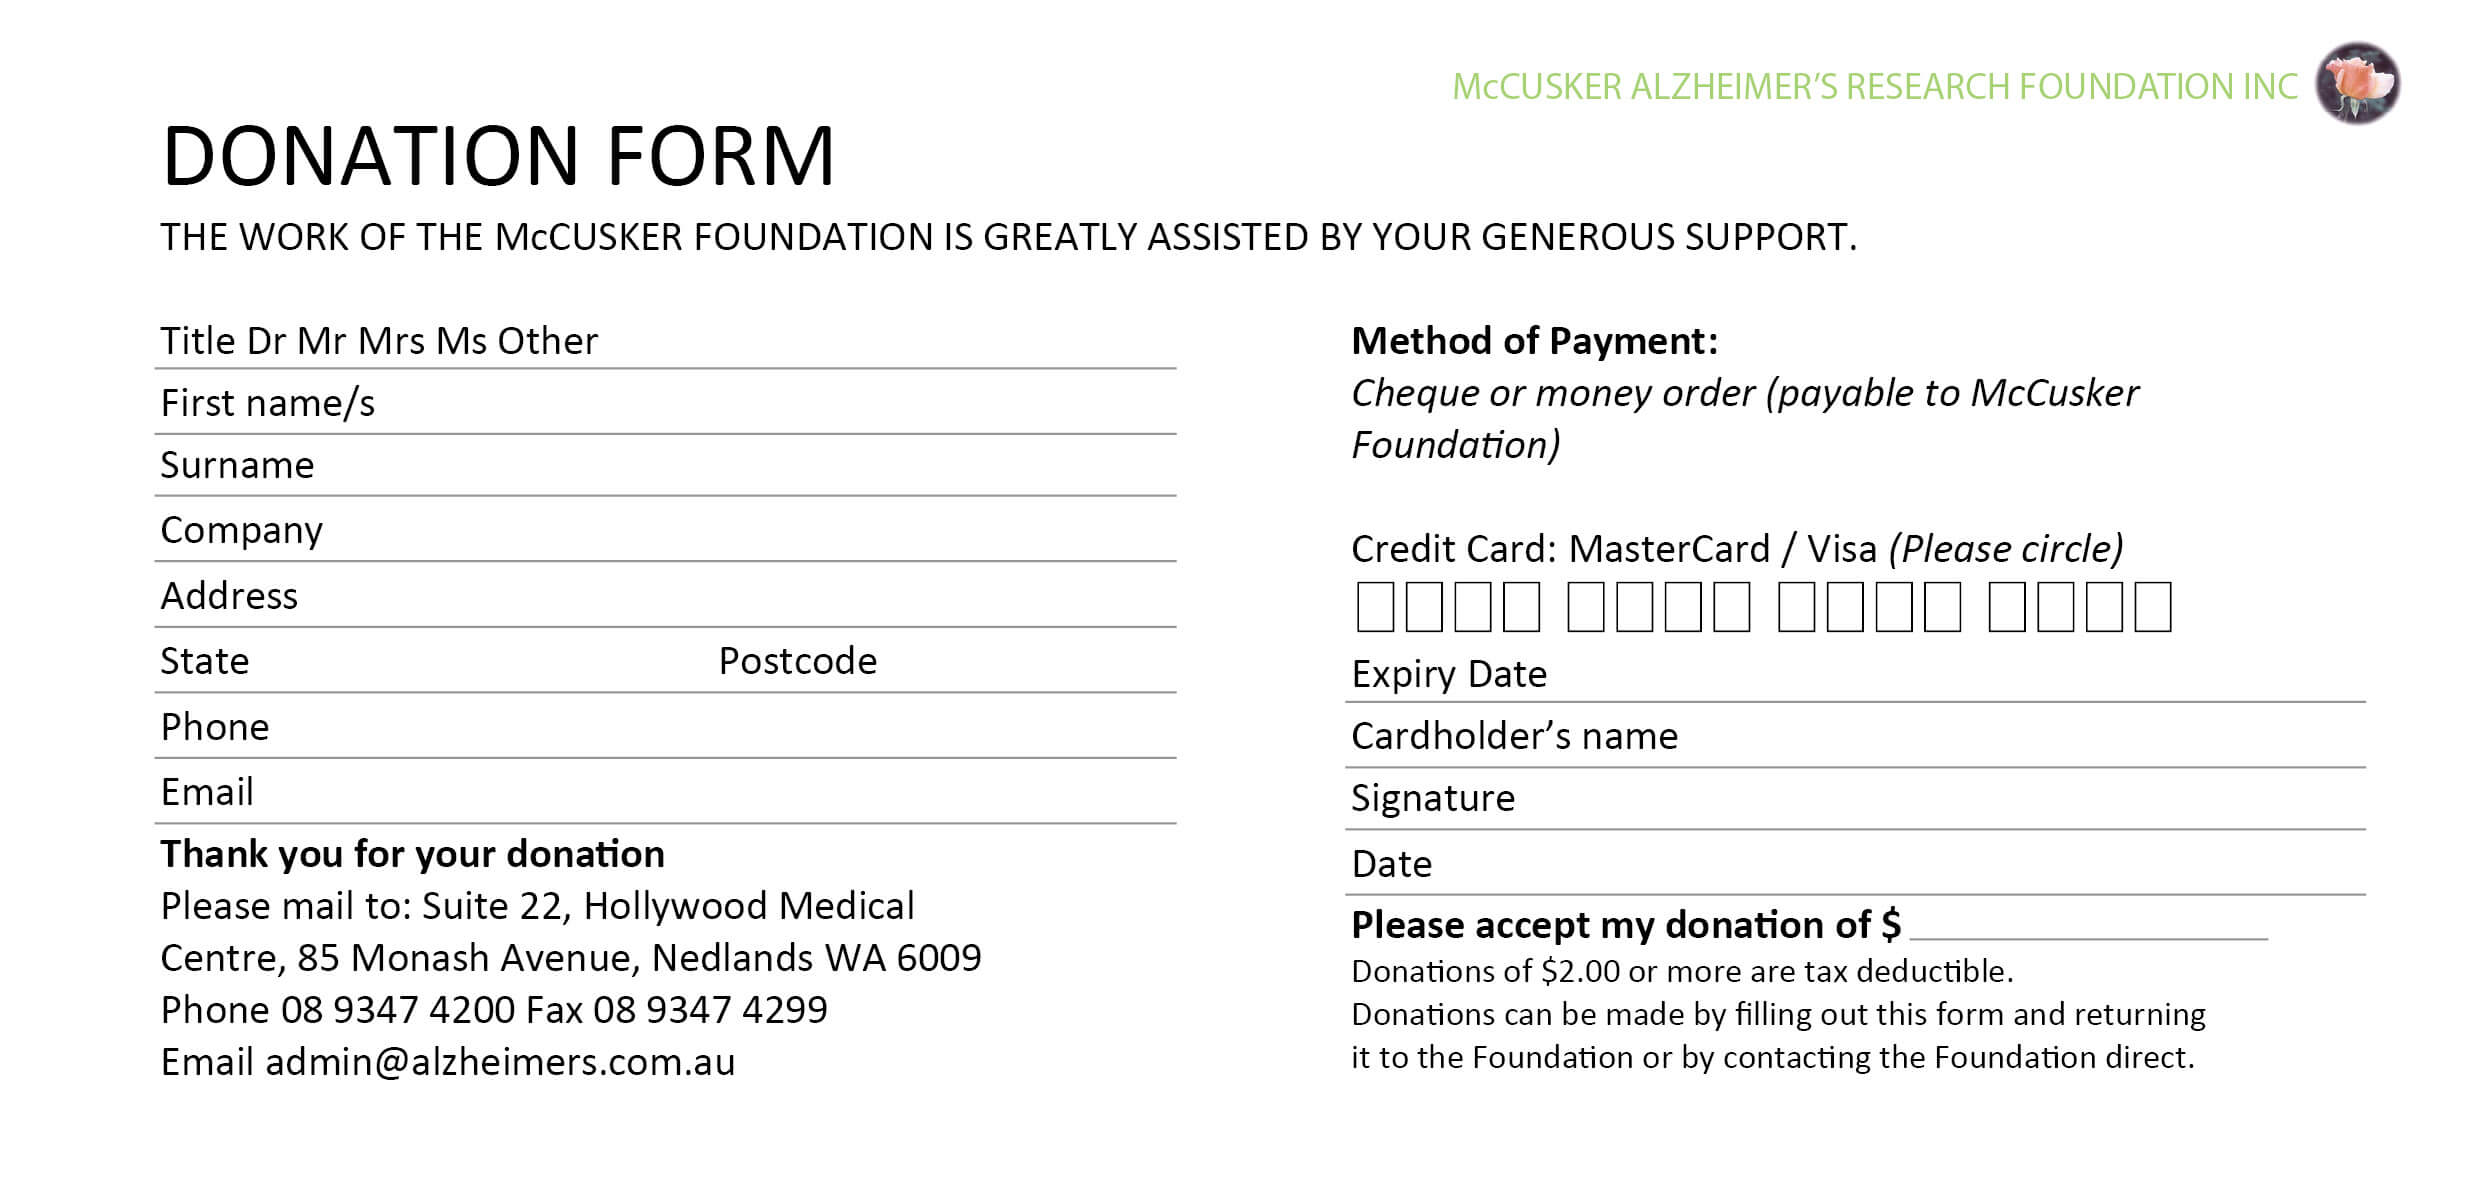 037 Fundraising Request Form Template Card Donation 458179 Intended For Donation Card Template Free